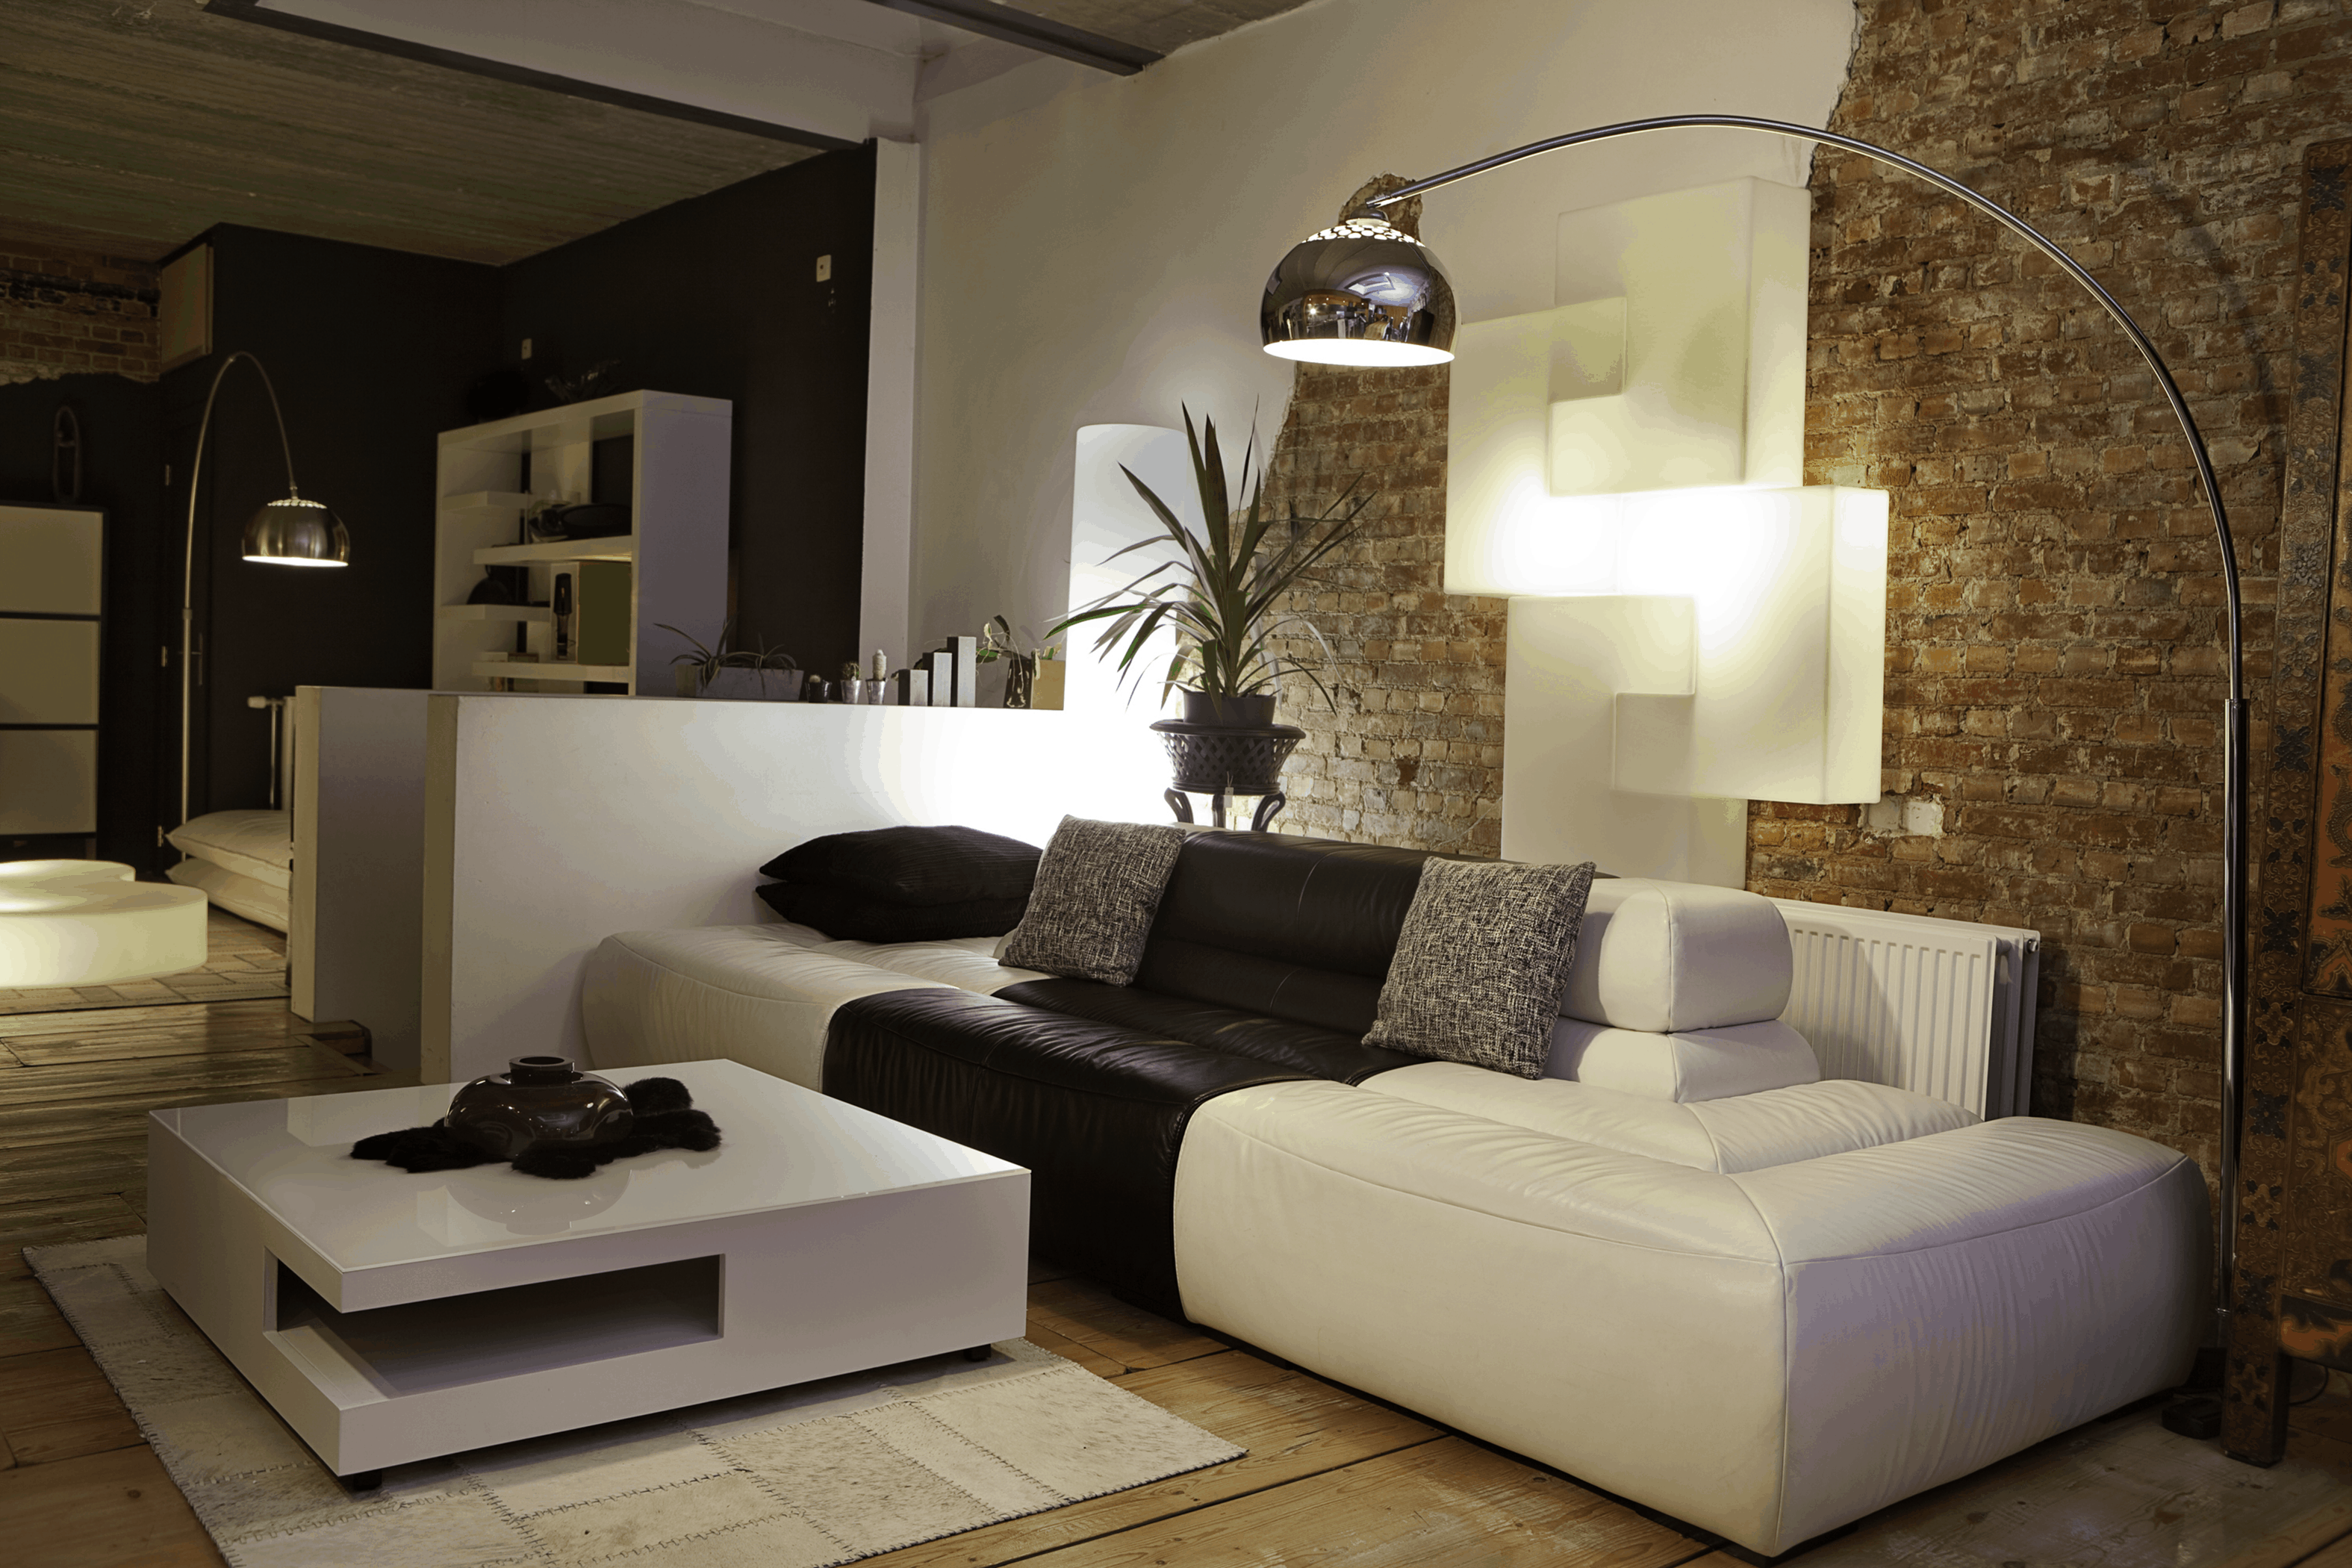 If your living room does not have an overhead lighting, use a big lamp #lightIdeas #homelighting #lightingdesign #architecturallighting #lightfixture #lightFixtures #lighting #lights